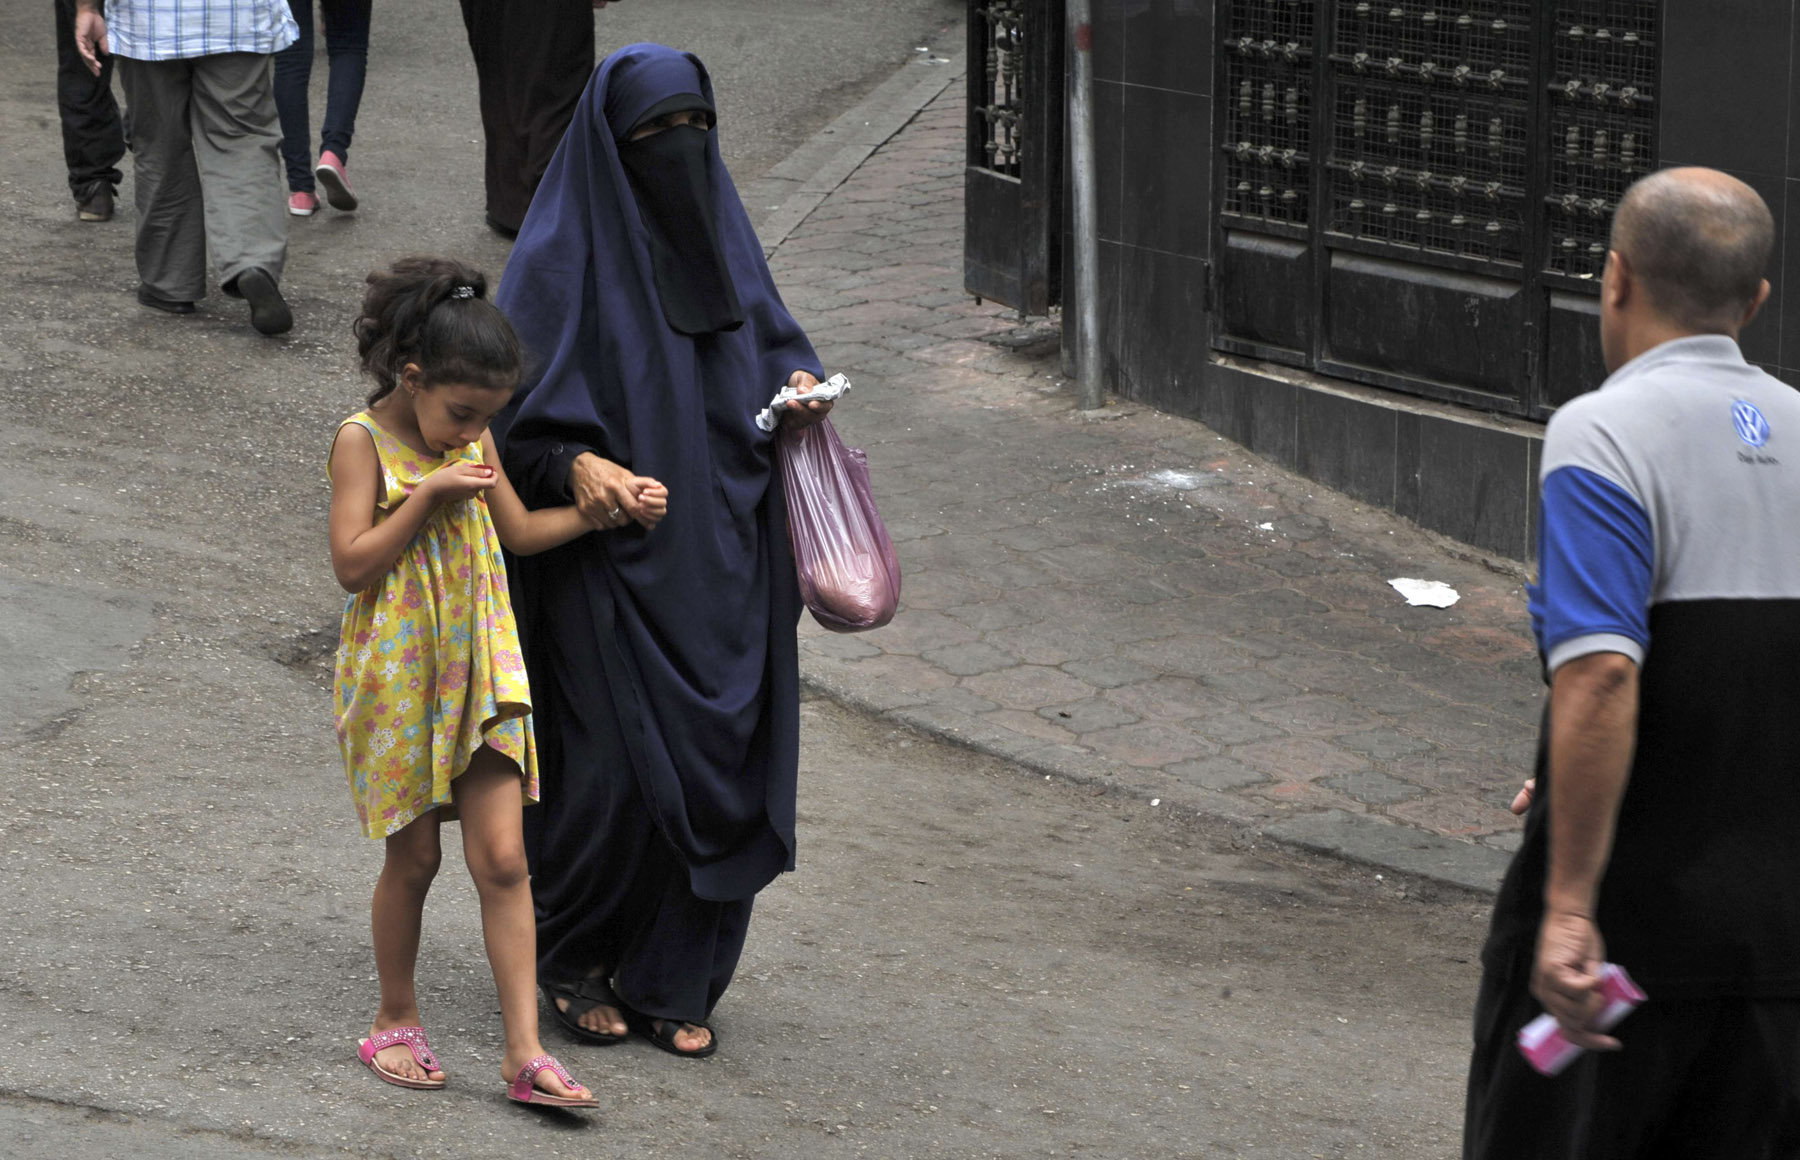 A veiled woman walks with a girl in central Algiers. (AFP)